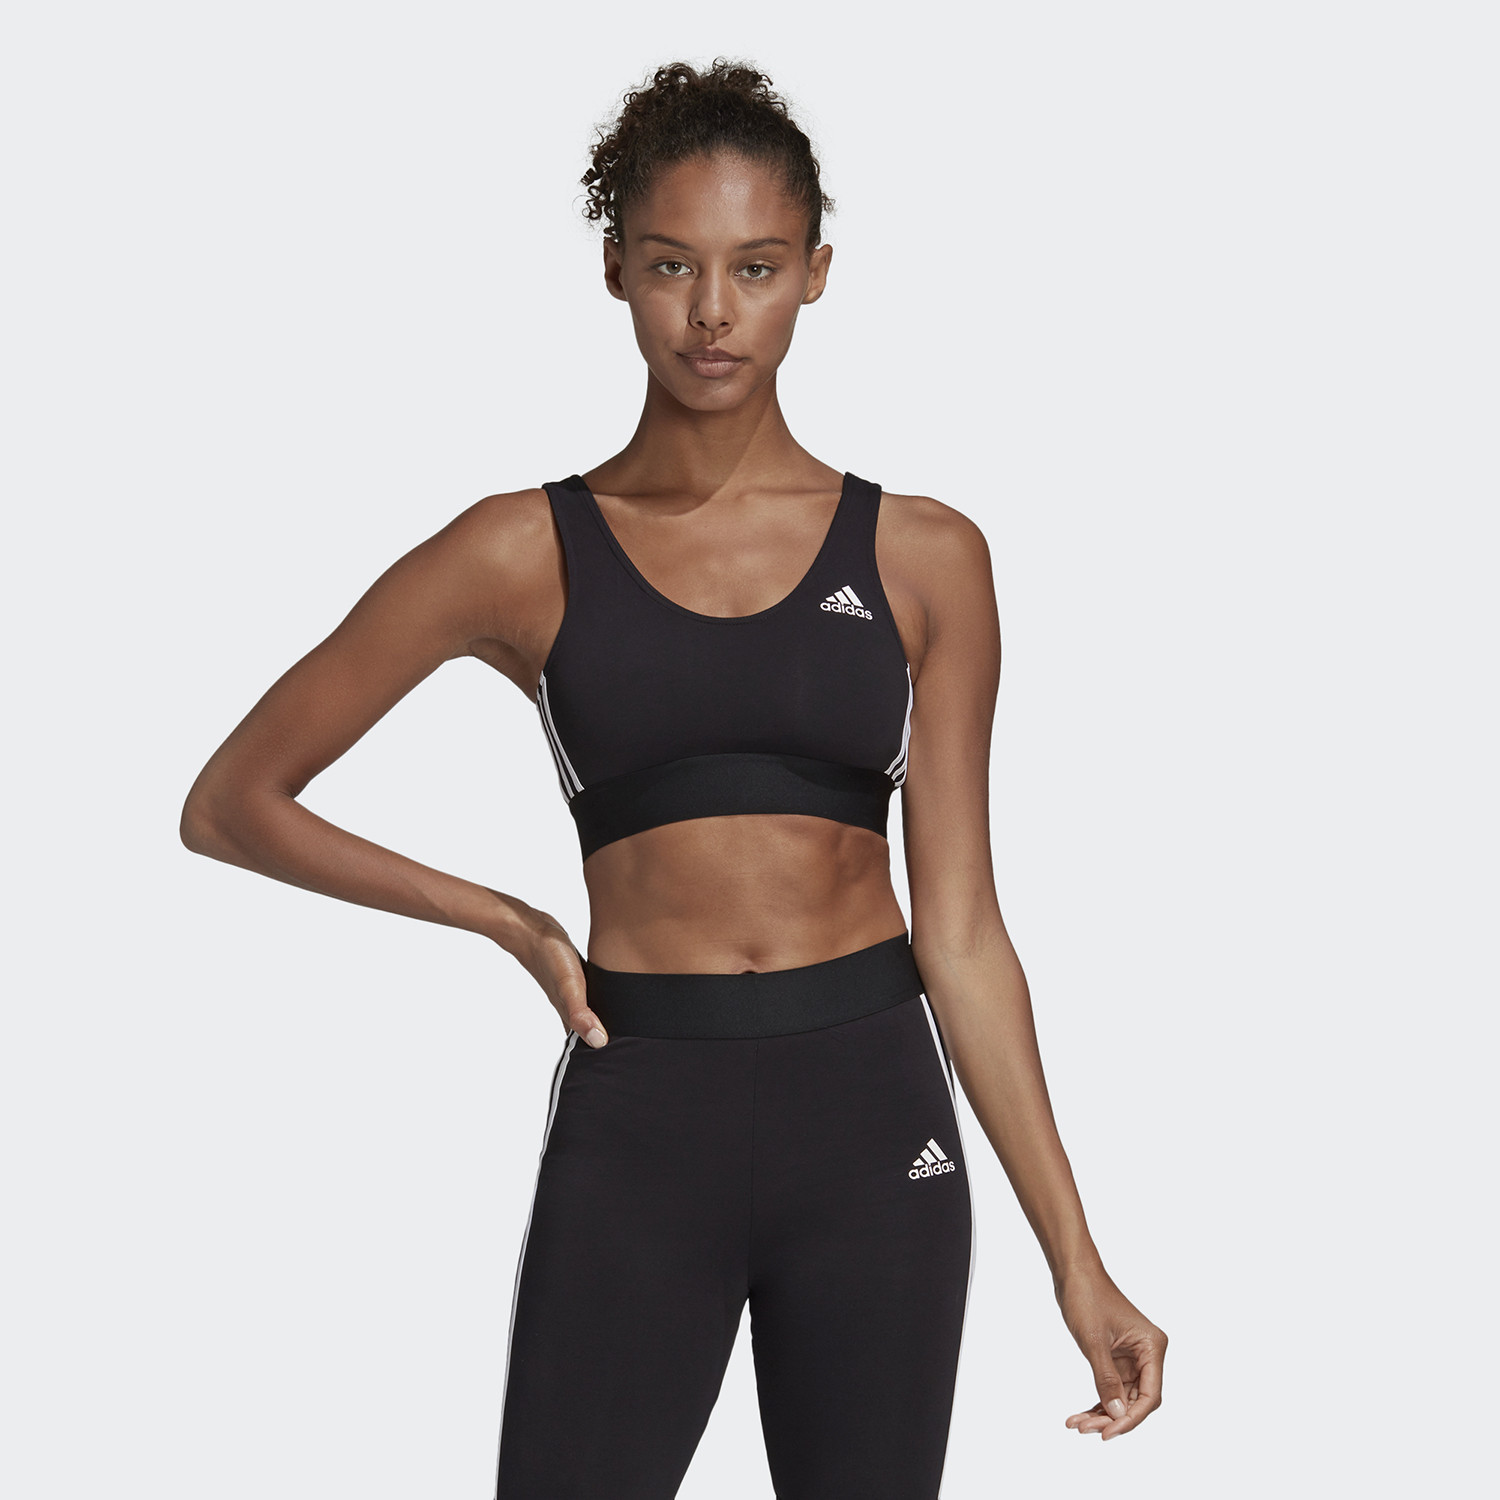 adidas Must Haves 3-Stripes Bra Top (9000044982_1480)